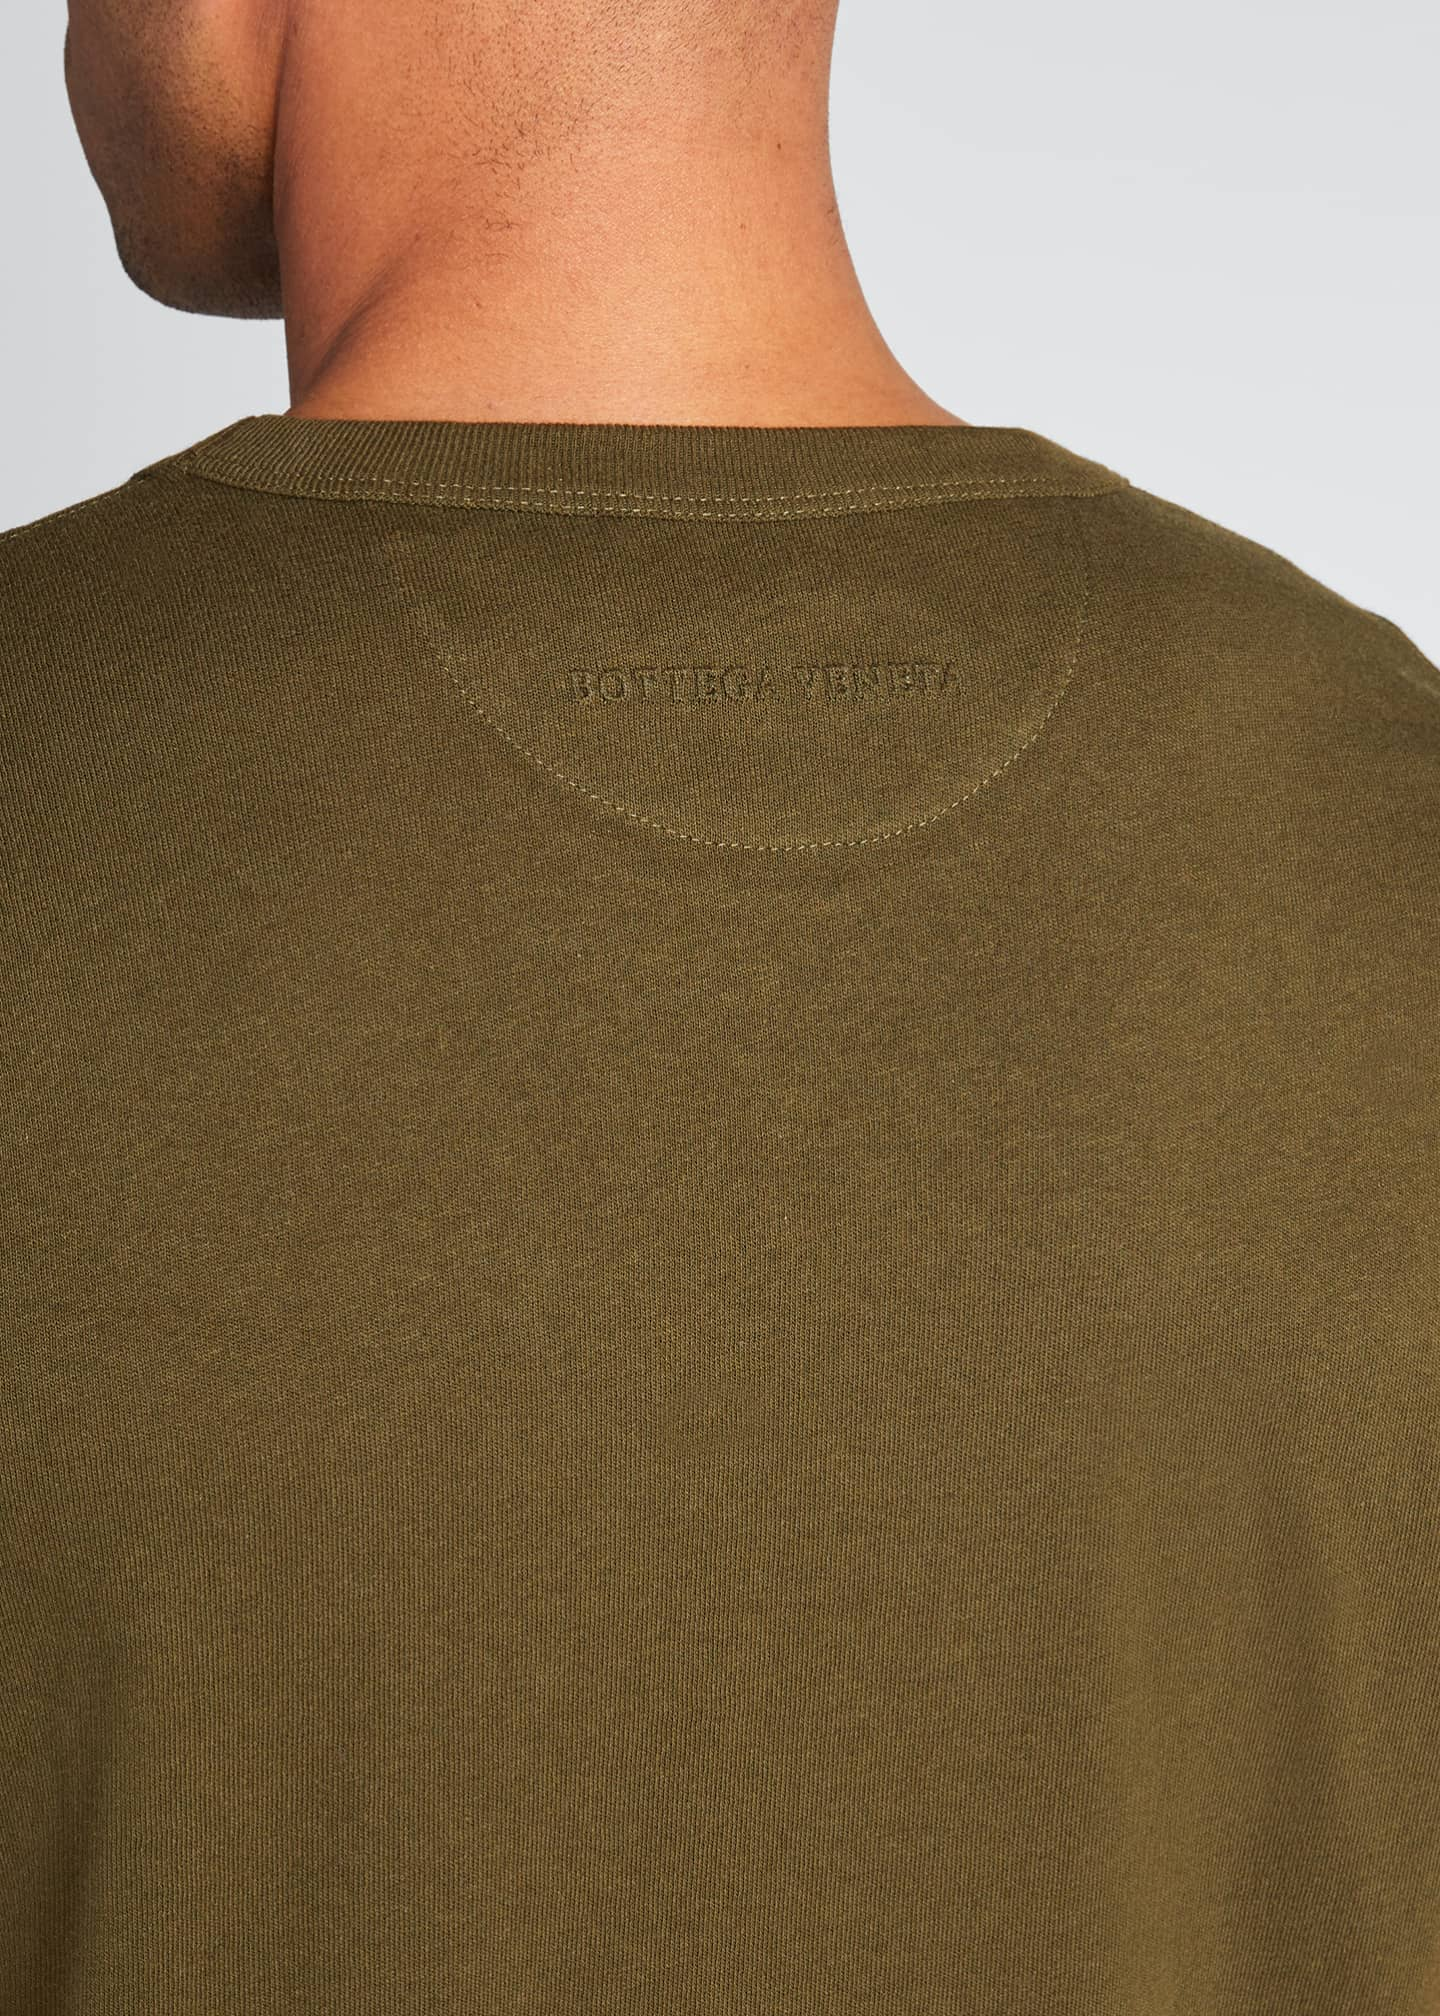 Image 4 of 5: Men's Solid Lightweight Crewneck Tee